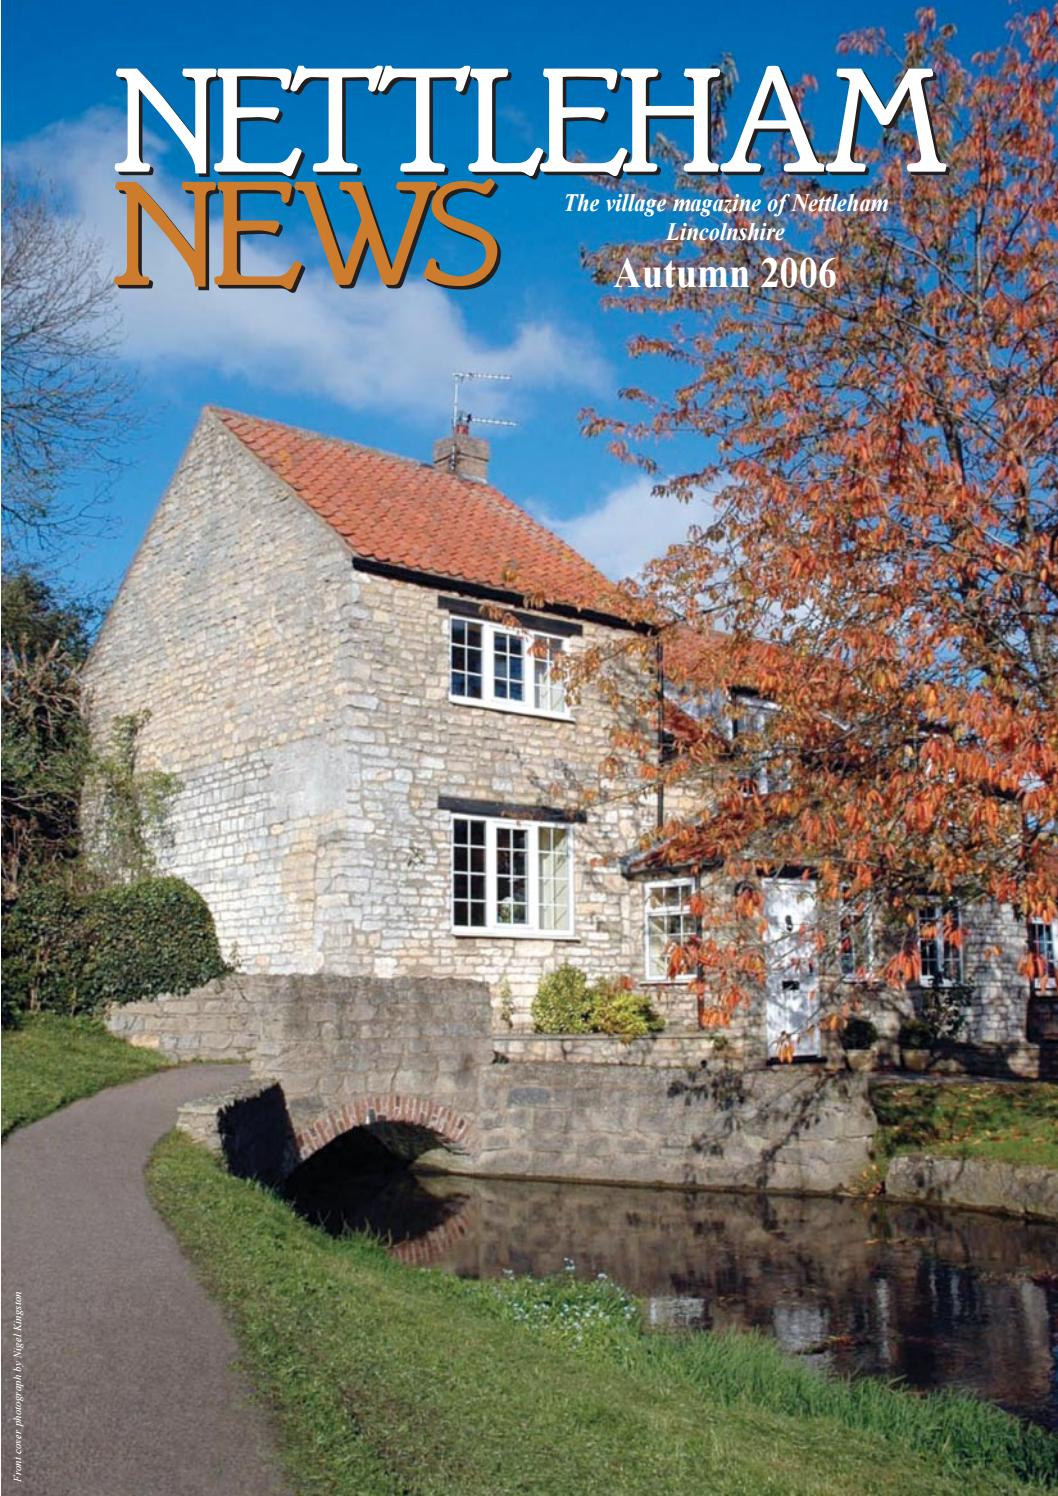 Nettleham News - 2006-03 - Autumn 2006 - Issue 95 by